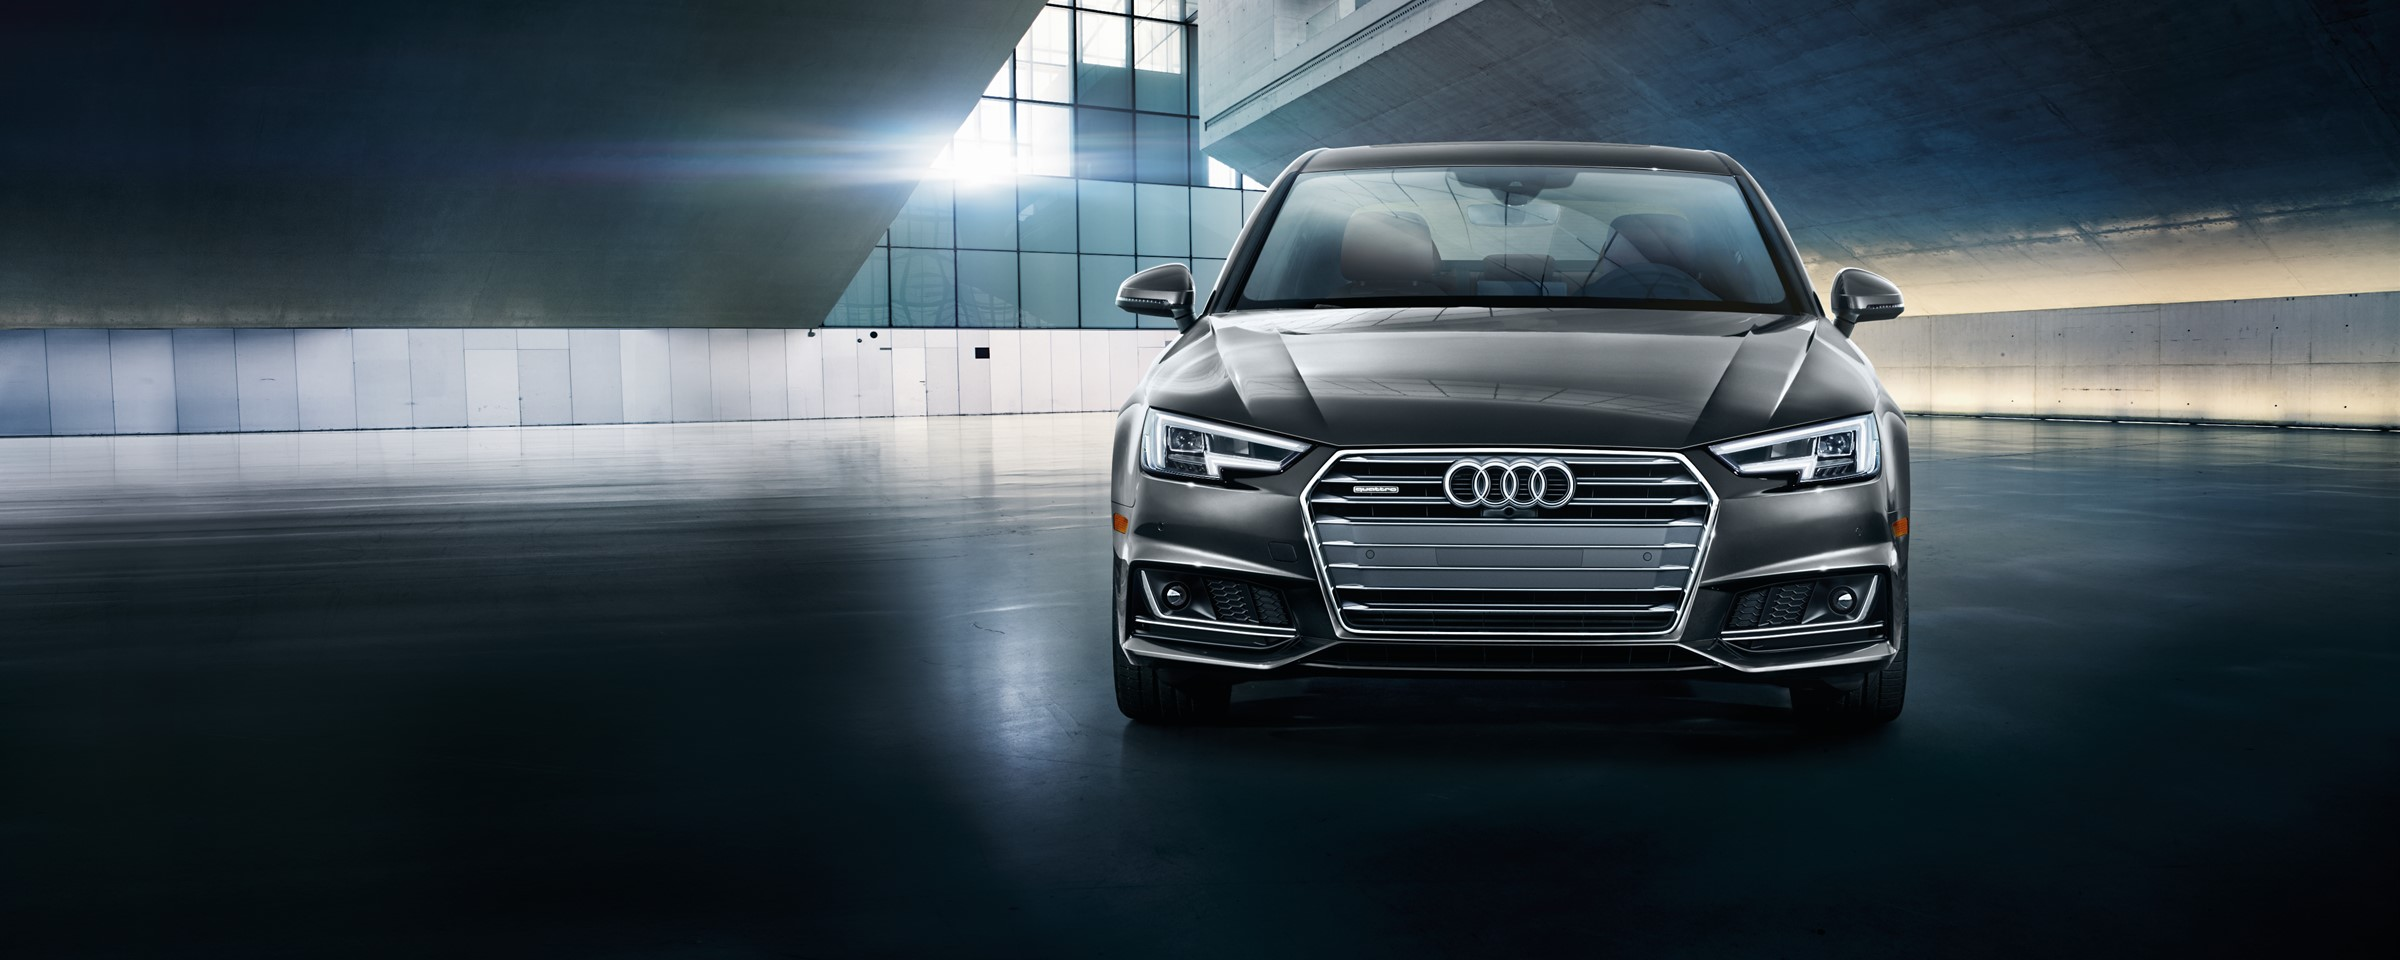 Safety Tips For Driving Your Audi A4 At Night Indigo